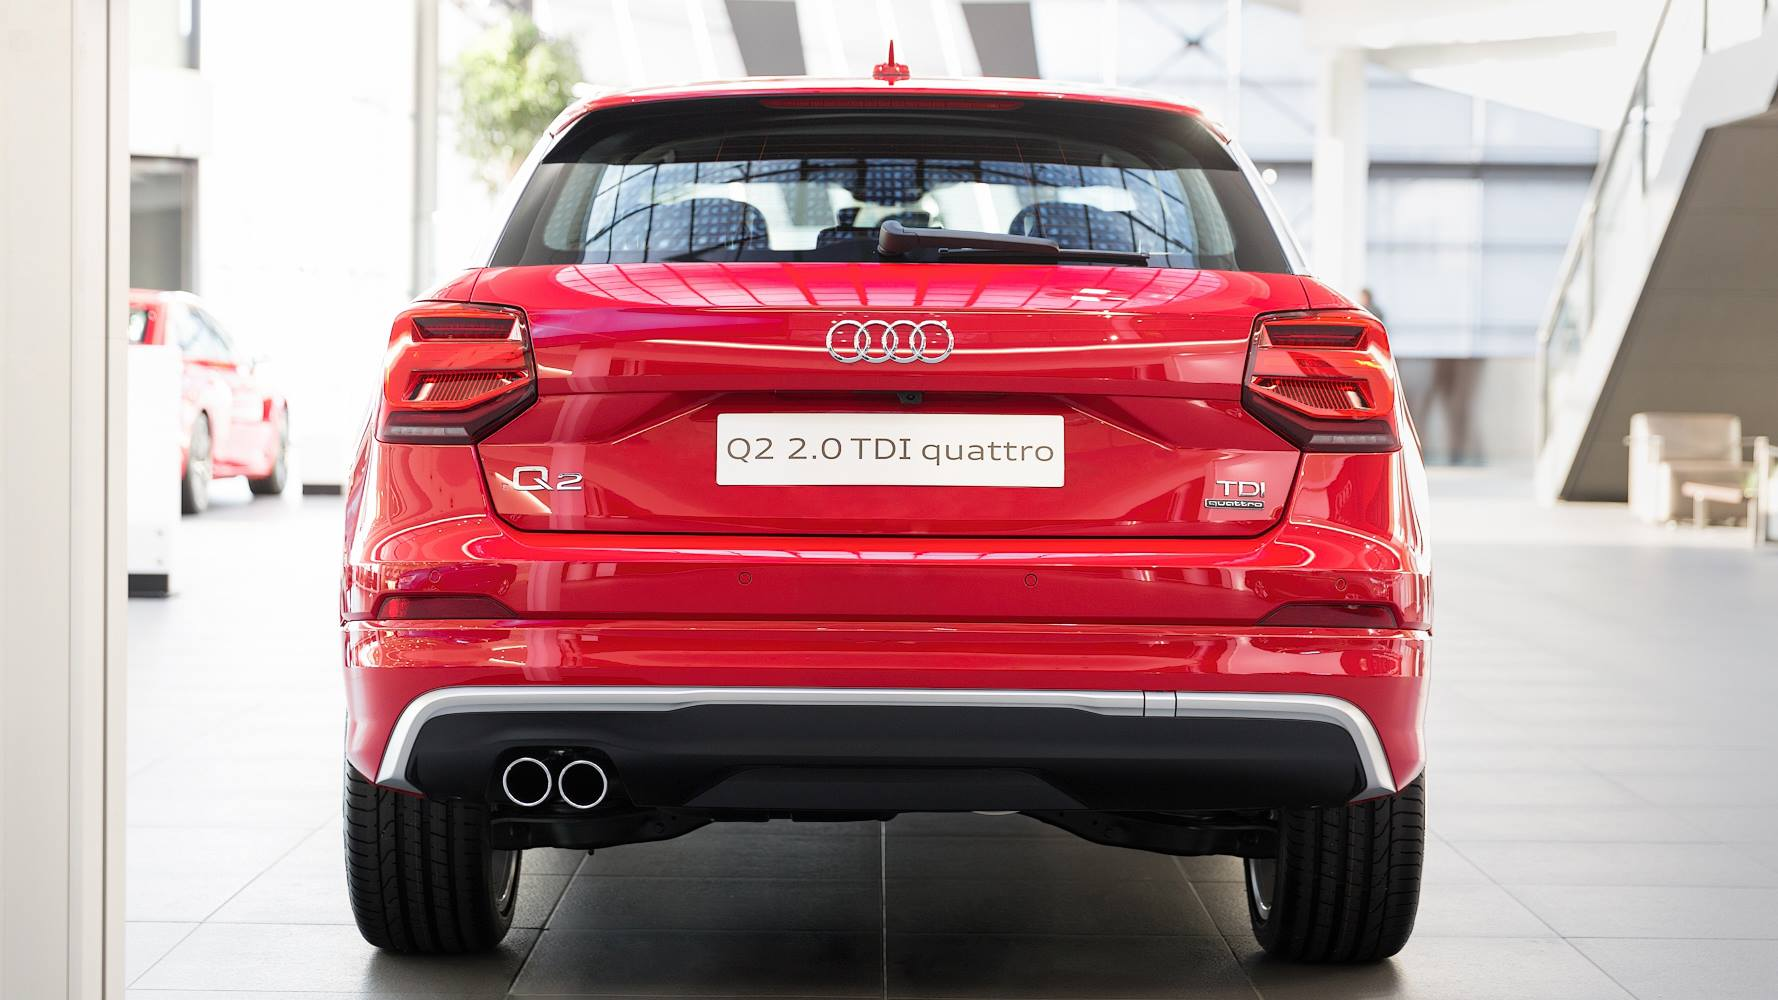 New Audi Q2 Crossover Arrives at Audi Forum Neckarsulm